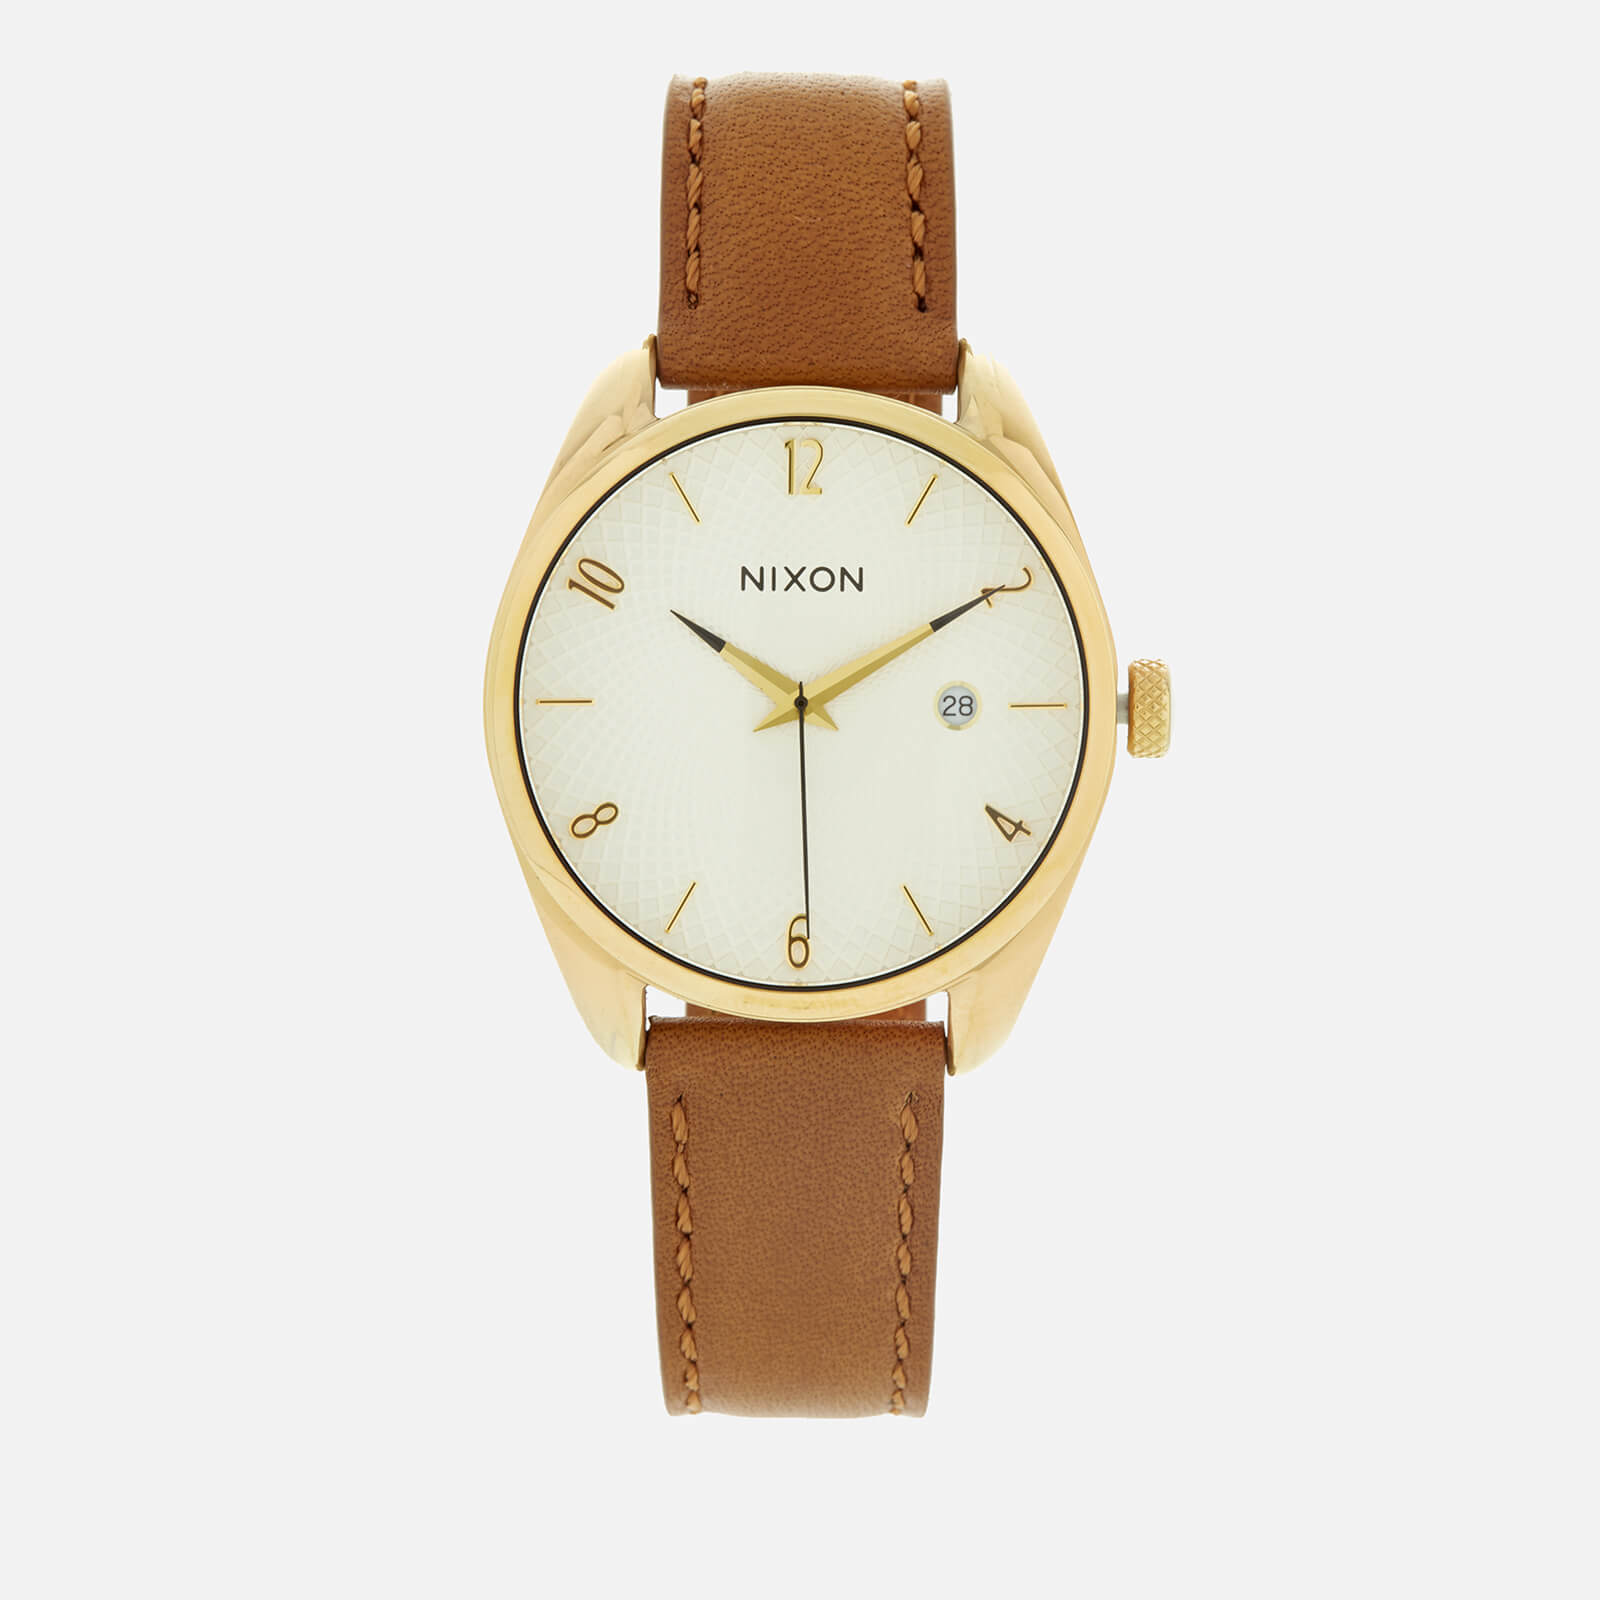 3a1950d88 Nixon Women's The Bullet Leather Watch - Gold/Saddle